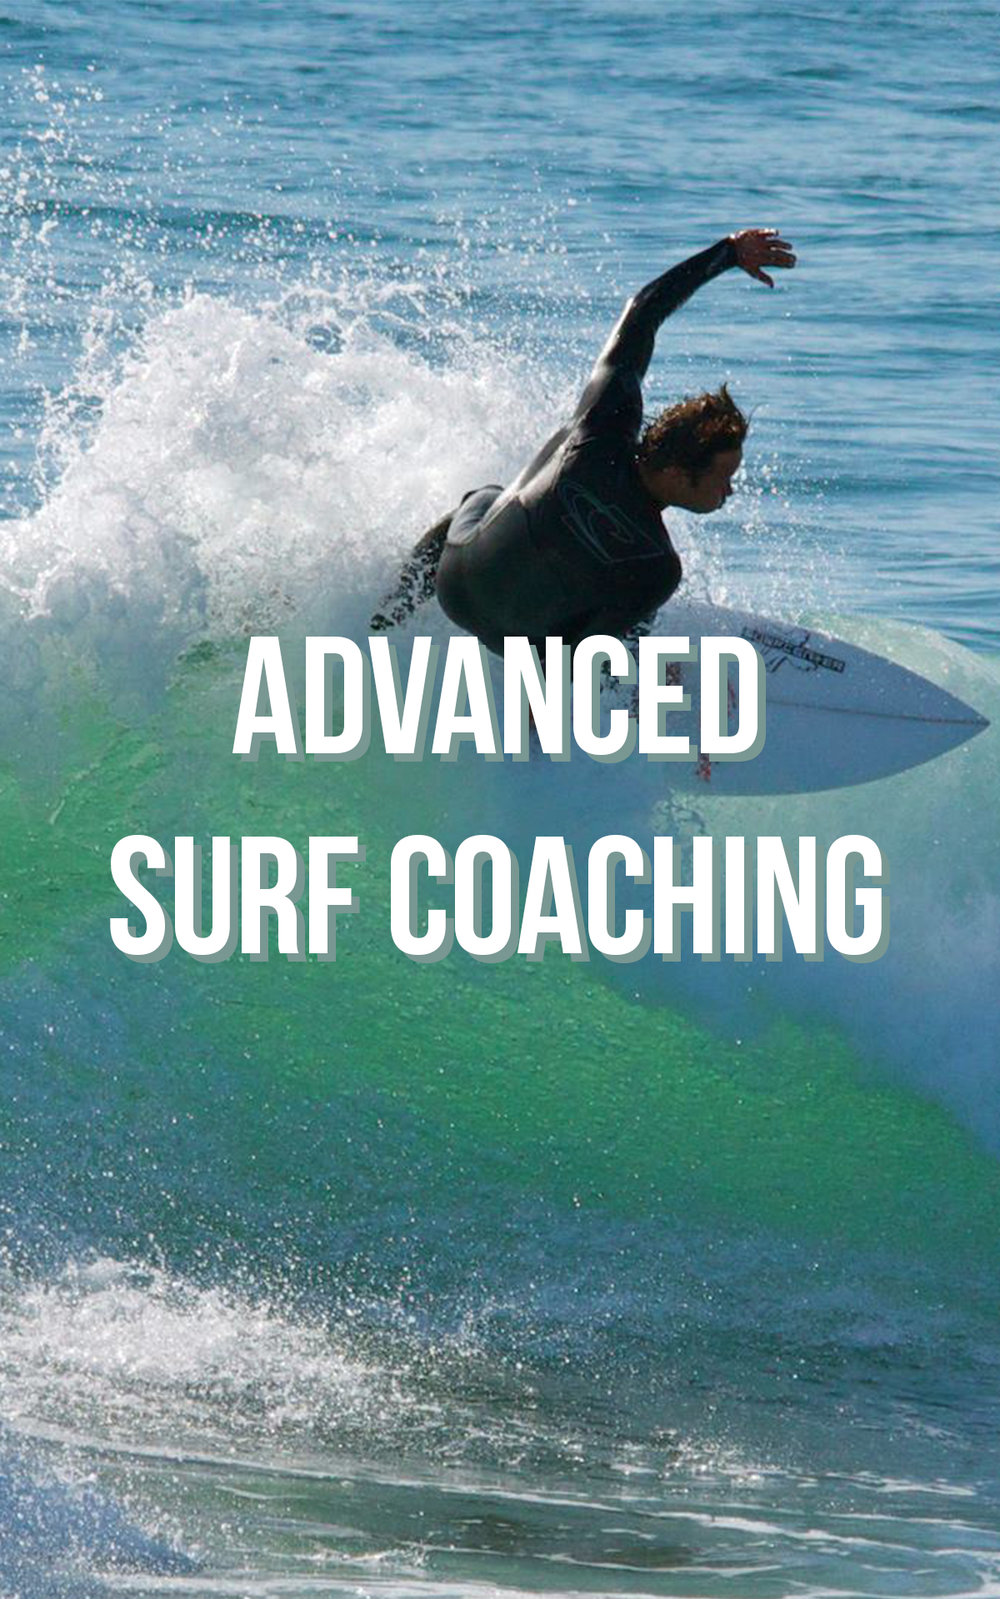 Advanced Surf Coaching_jan2019.jpg